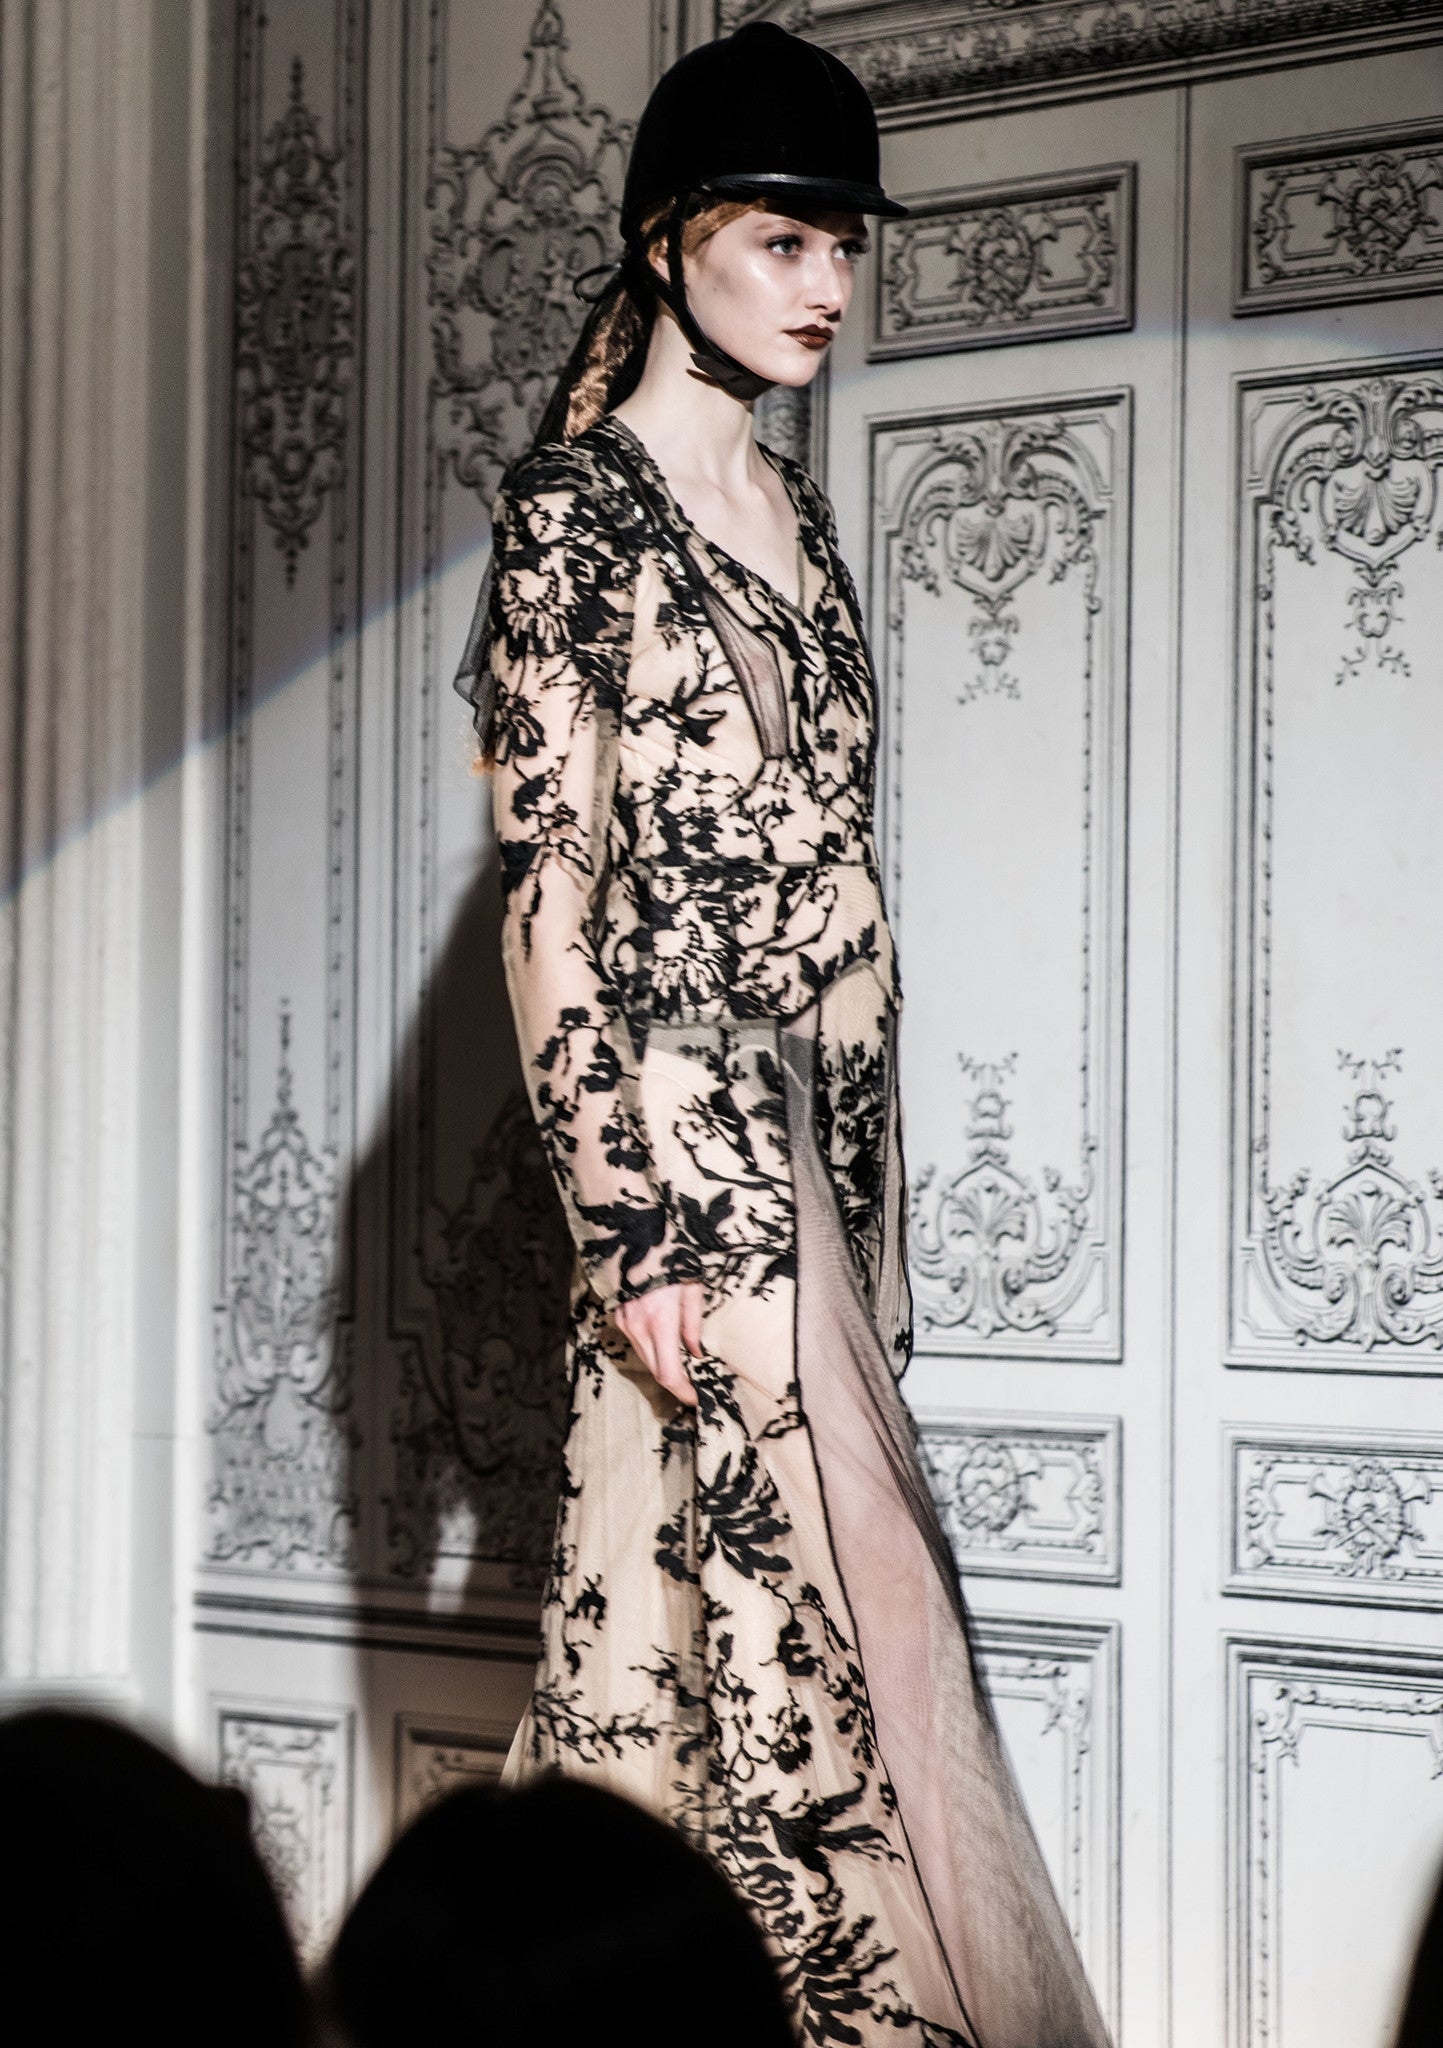 The Nude & Black Lace Lover Jung Dress Sheer Floral Lace Silk Tulle Silk Embroidery Jungle Garden Wendy Nichol Clothing Fashion Designer Handmade in NYC AW14 Ready to Wear Fashion Runway Show Custom Tailoring Made to Measure